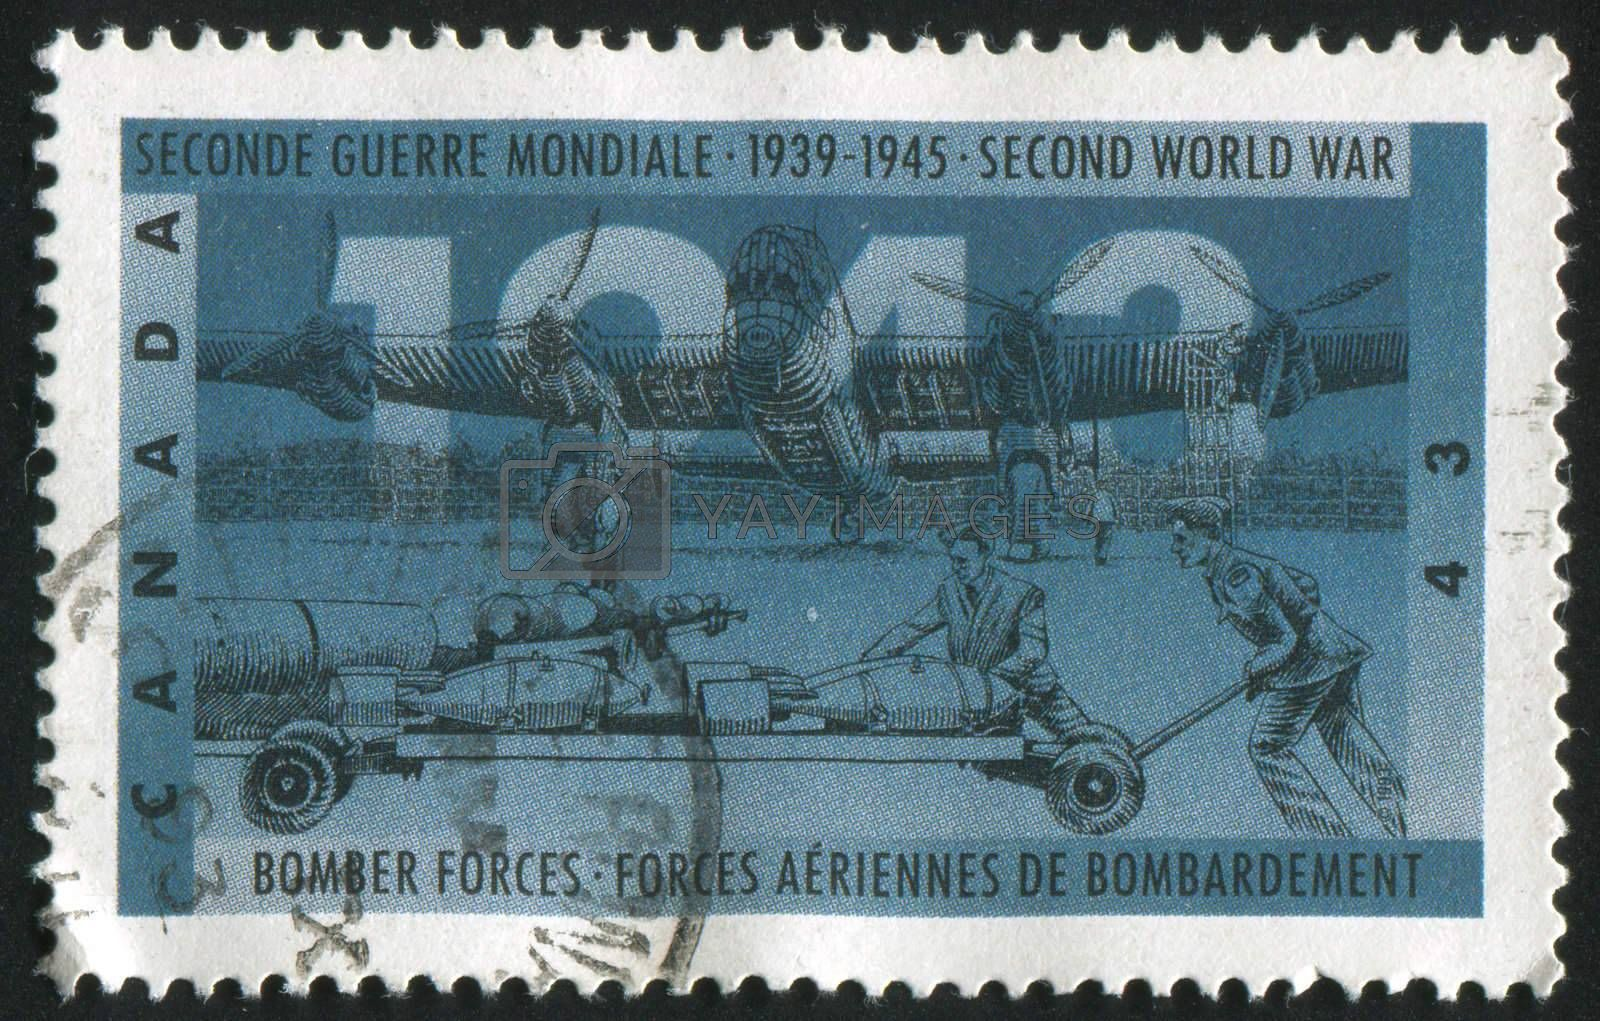 CANADA - CIRCA 1993: stamp printed by Canada, shows Bomber forces, circa 1993